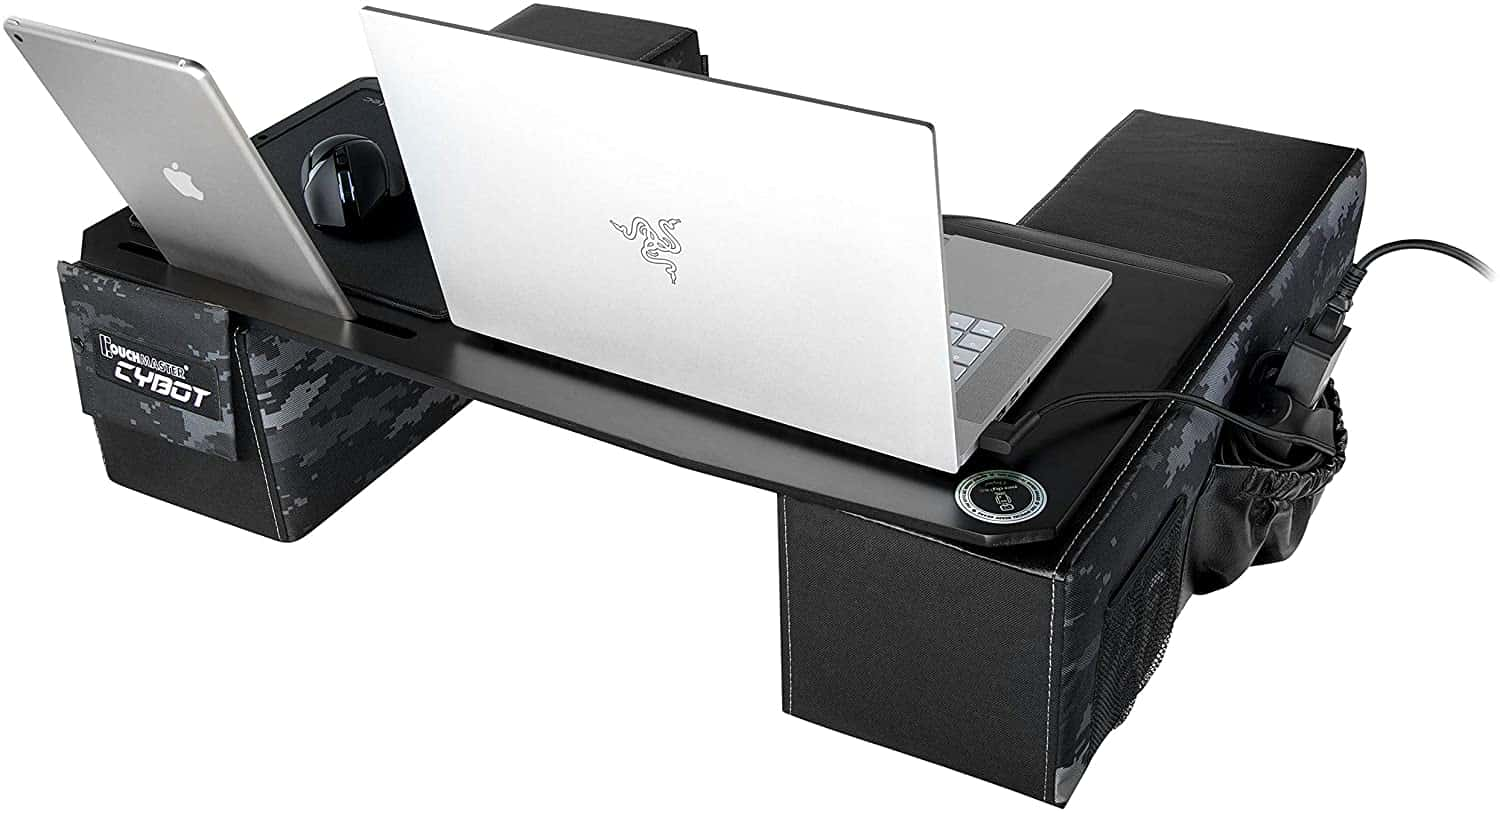 Couchmaster CYBOT - Ergonomic Lap Desk for Notebooks or Wireless Equipment, Including Pillows, Mousepad etc